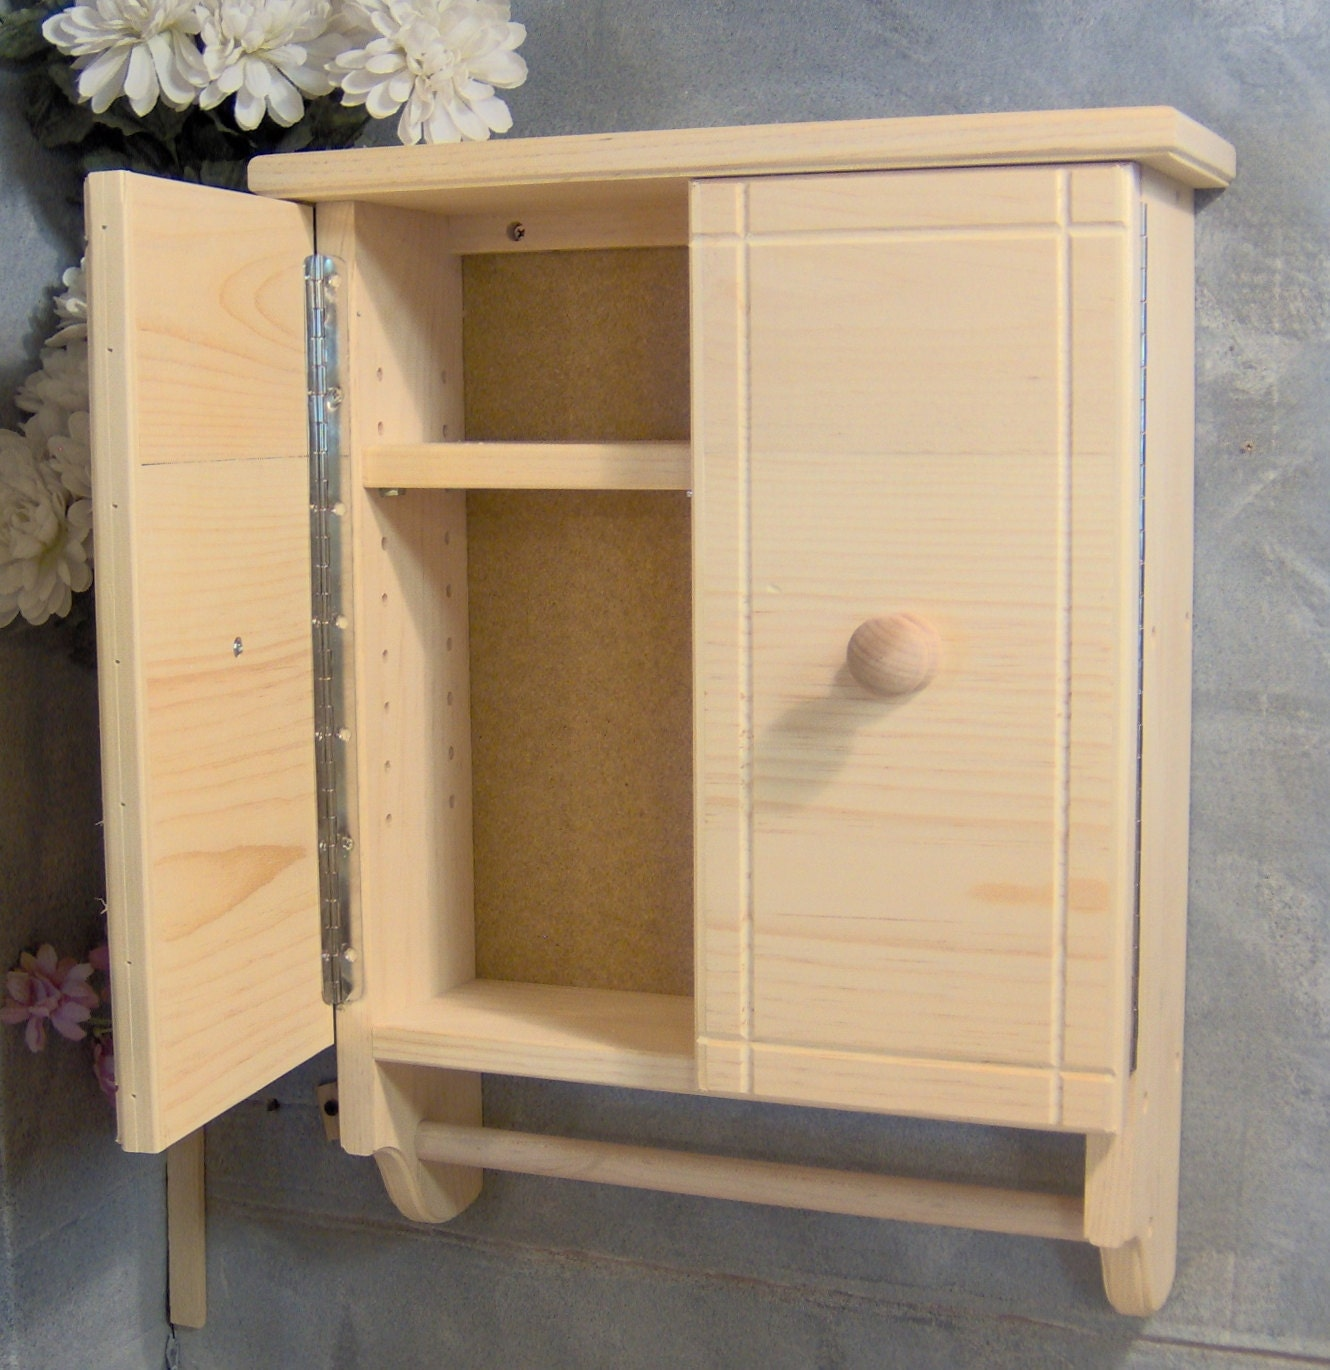 UF503 Unfinished Bathroom Cabinet Storage Lotions by jahnjed